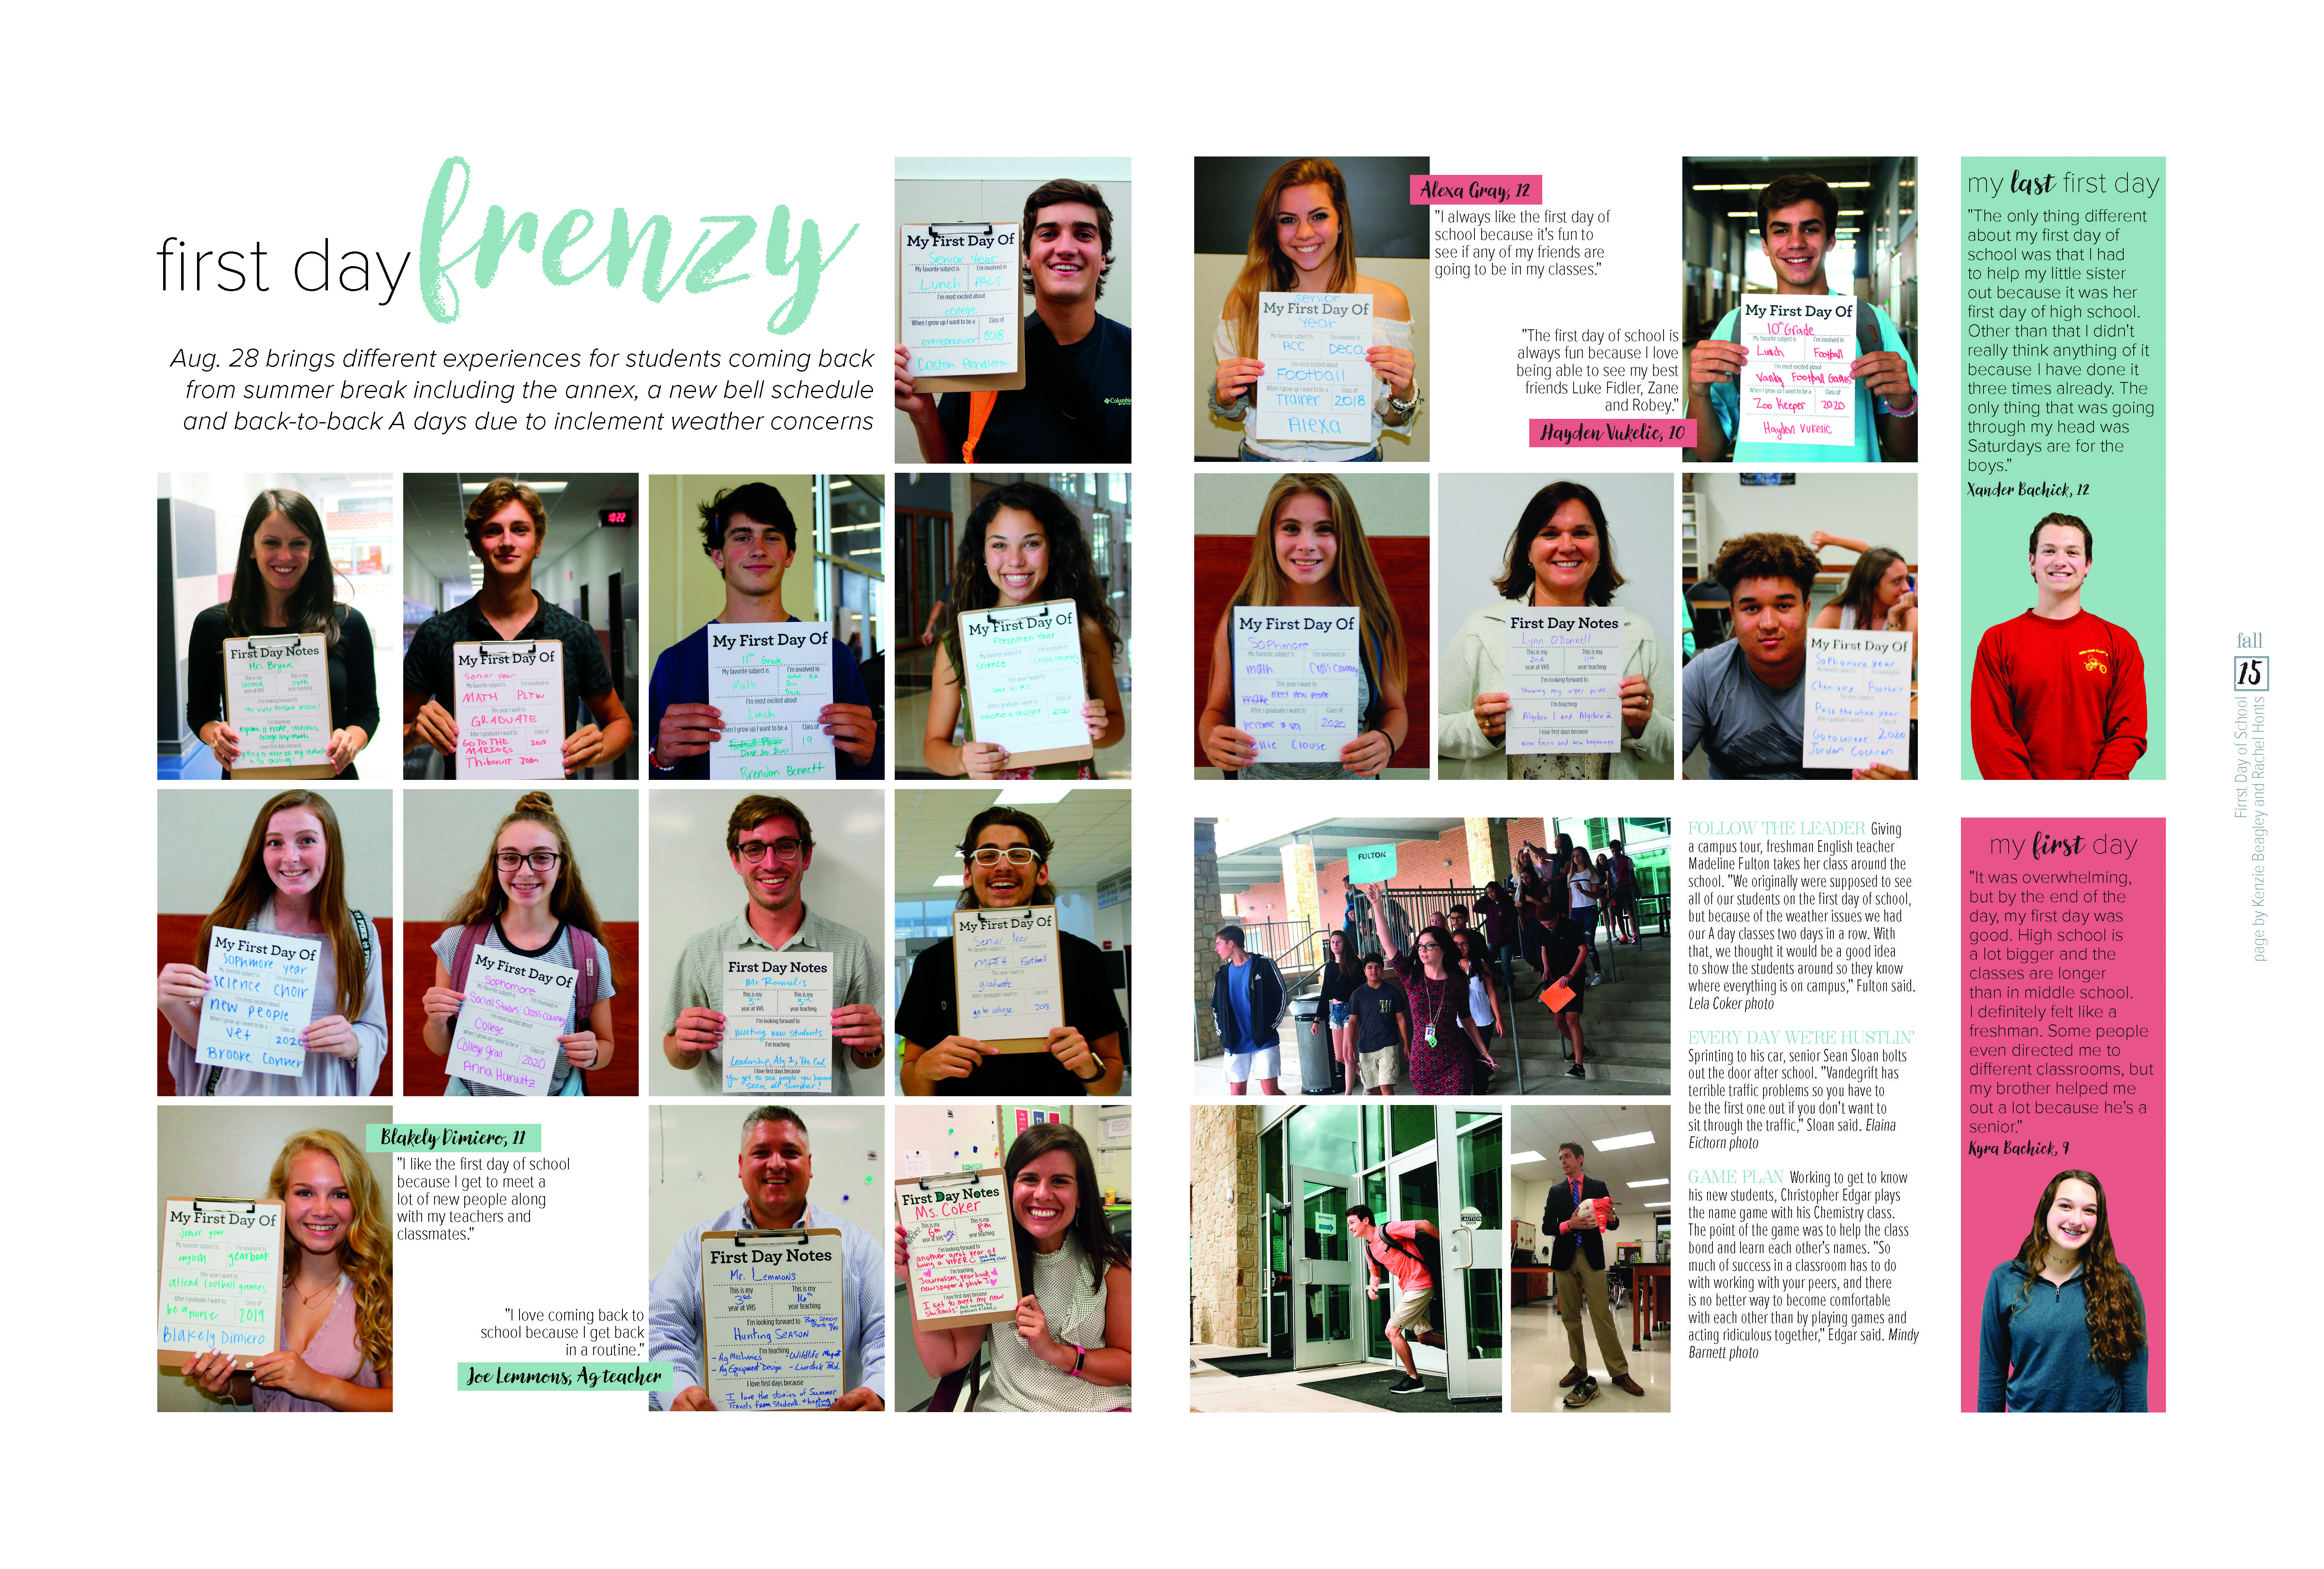 Vandegrift High School Austin Tx Students And Teachers Share Impressions Of First Day Of School In Fun Forma Yearbook Layouts Yearbook Design Yearbook Pages